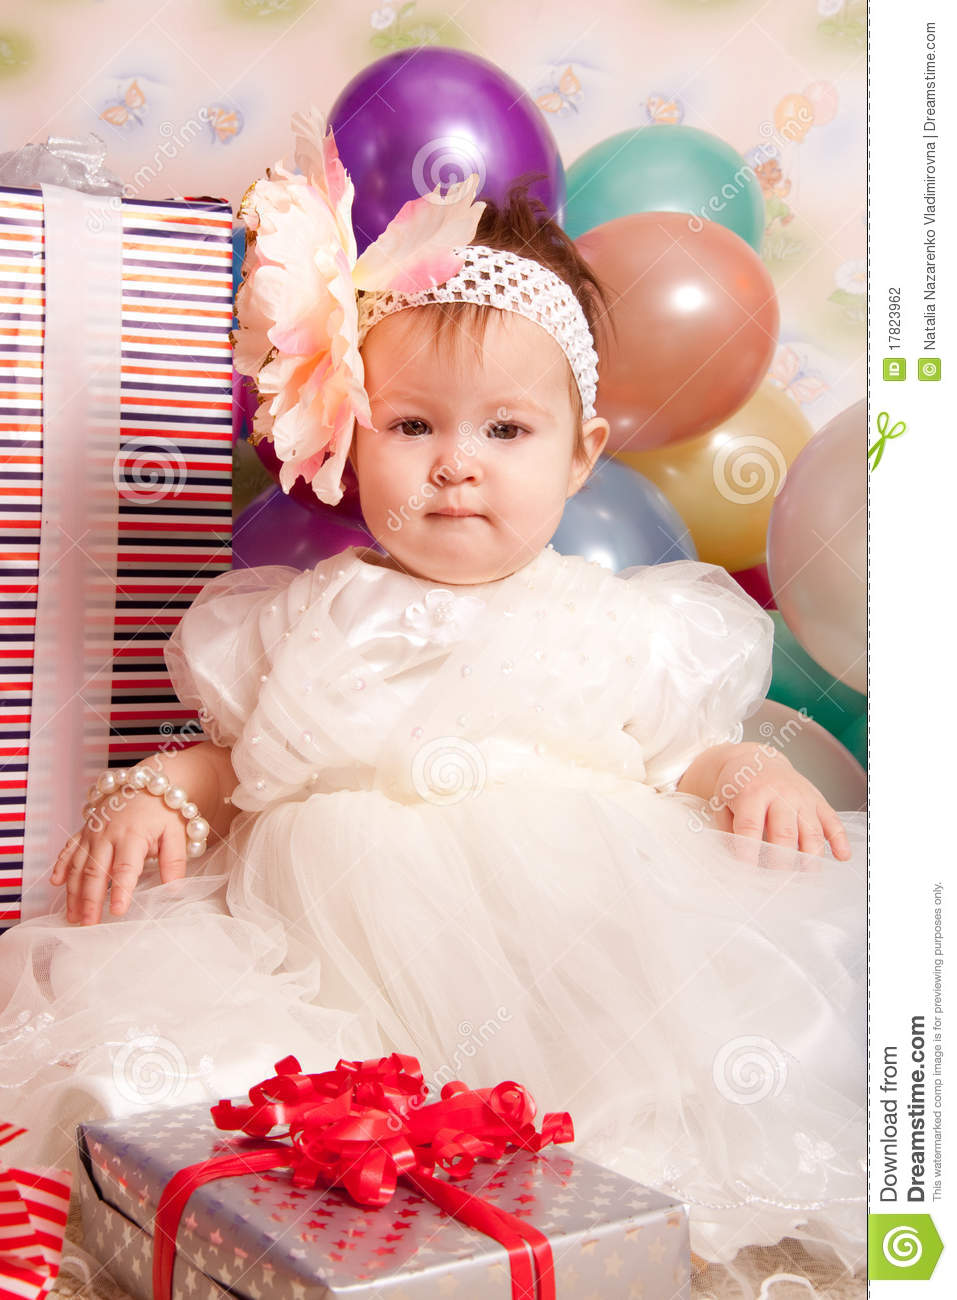 Happy Birthday Baby Stock Photo Image Of Child Dream 17823962